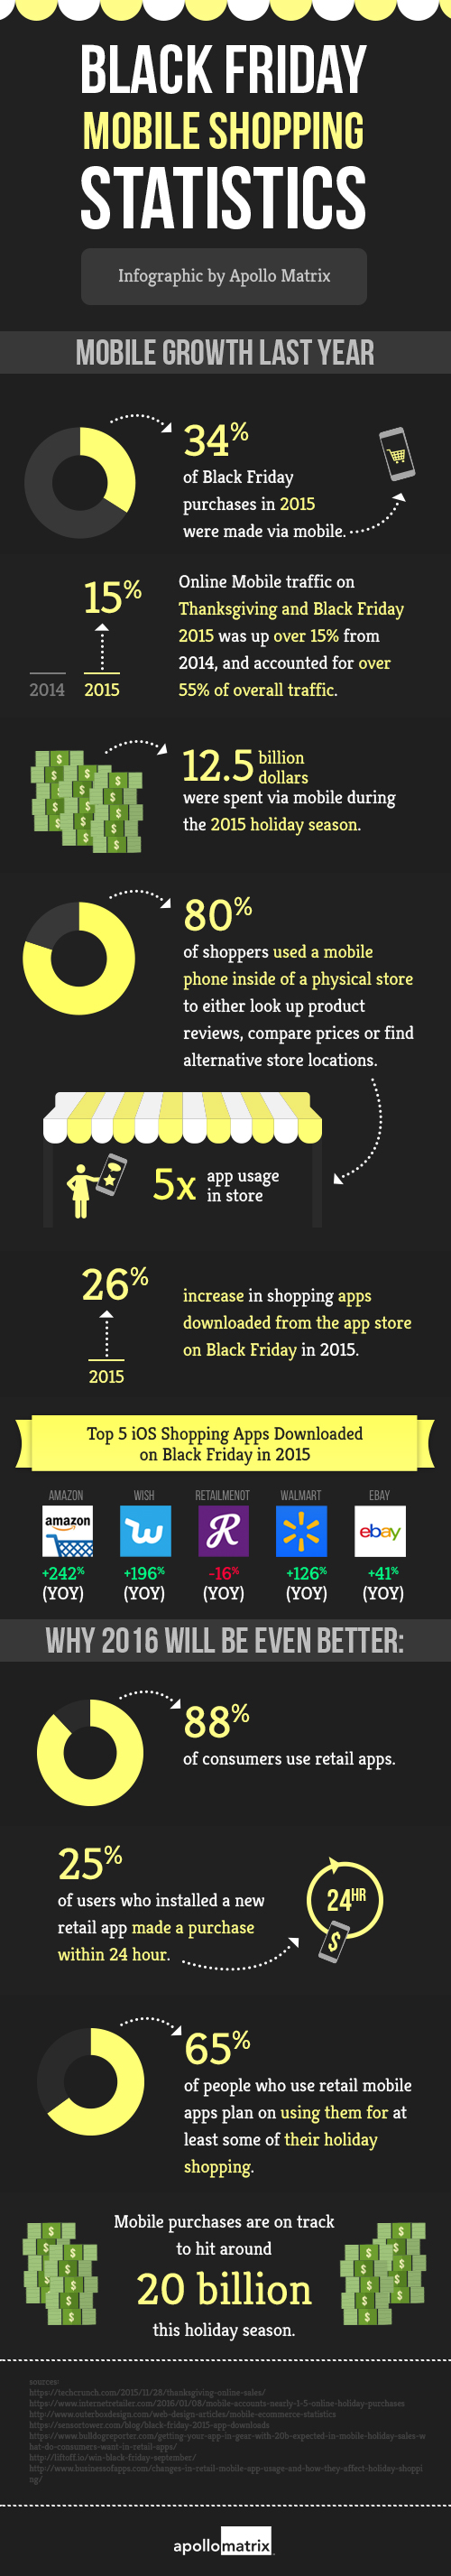 Mobile Shopping is Impacting Black Friday in Big Ways